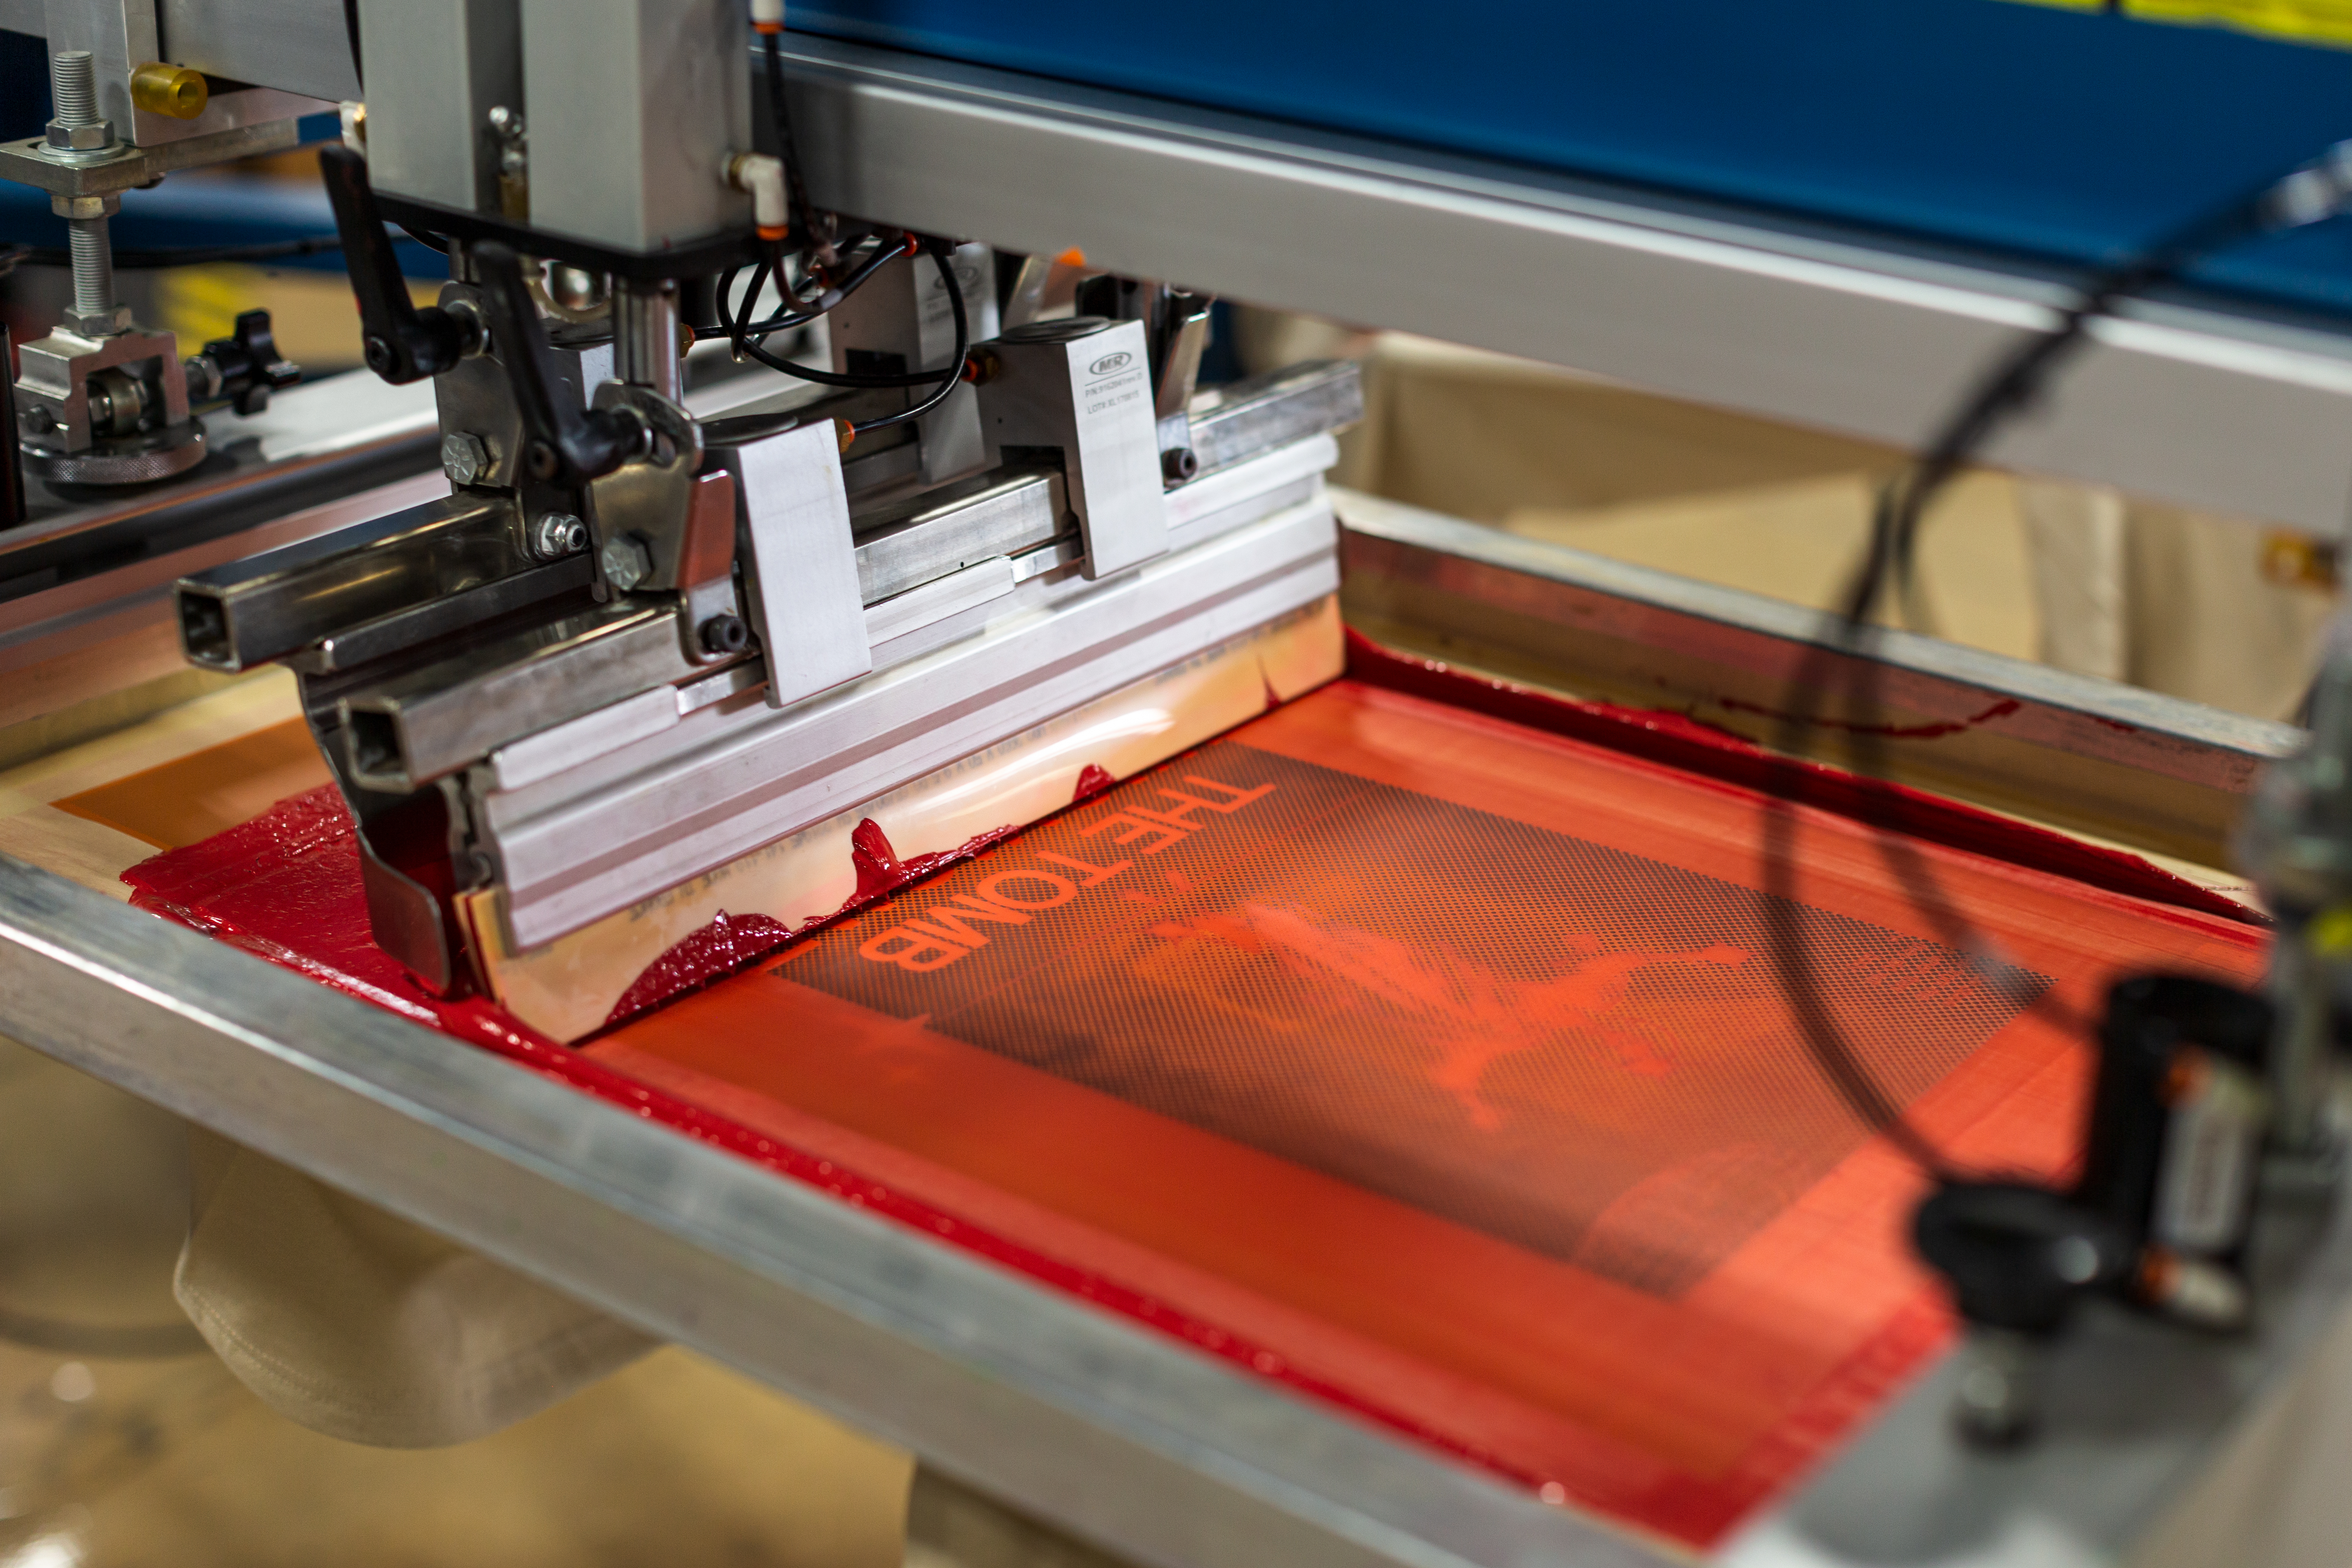 a screen print with the color orange being applied to a shirt